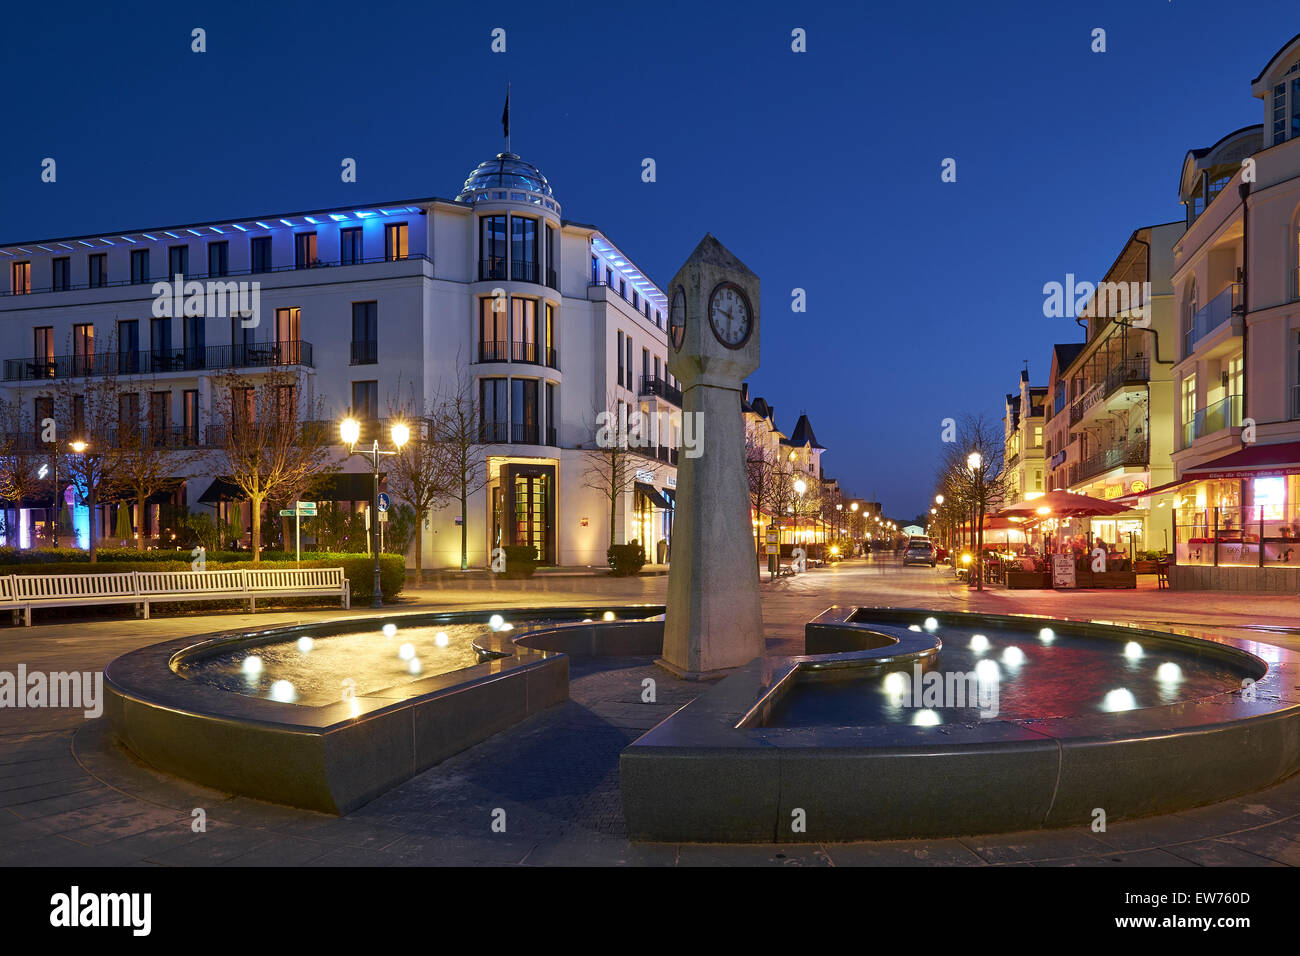 Beach promenade in the seaside resort Binz, Rügen, Germany - Stock Image